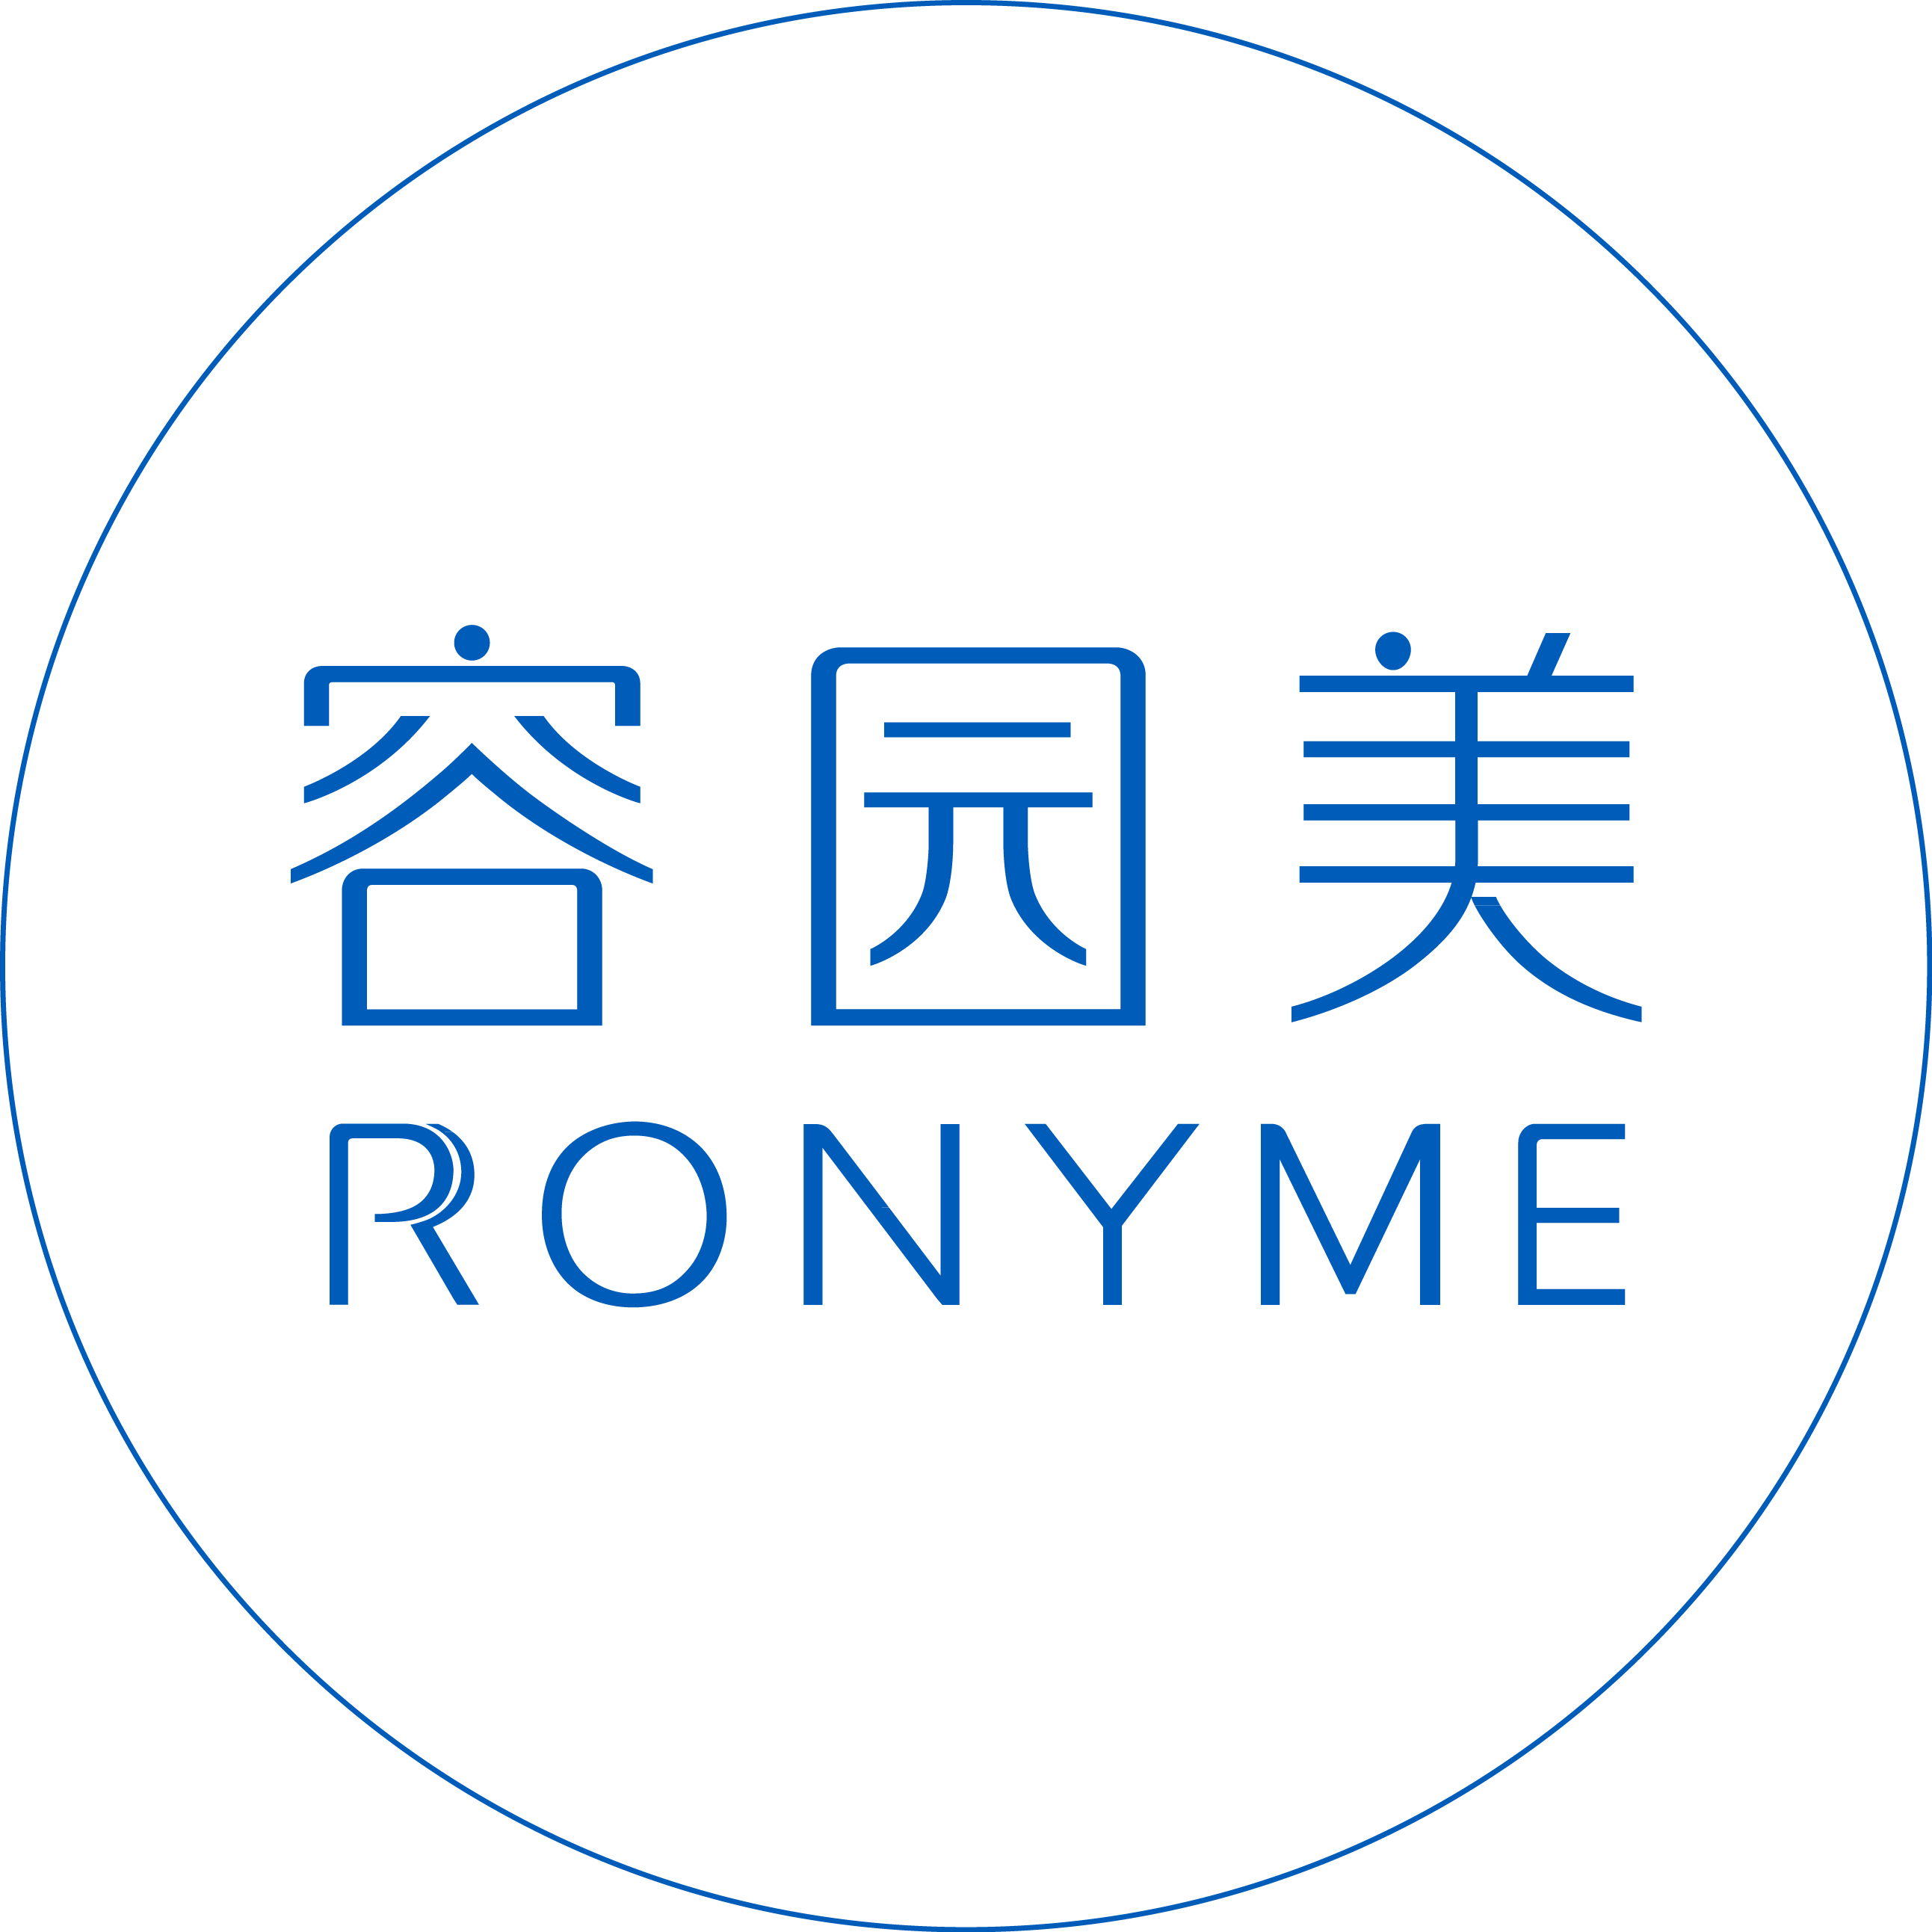 China's Jiebao Group Launches a Brand-New Product Series – Ronyme Art Mask